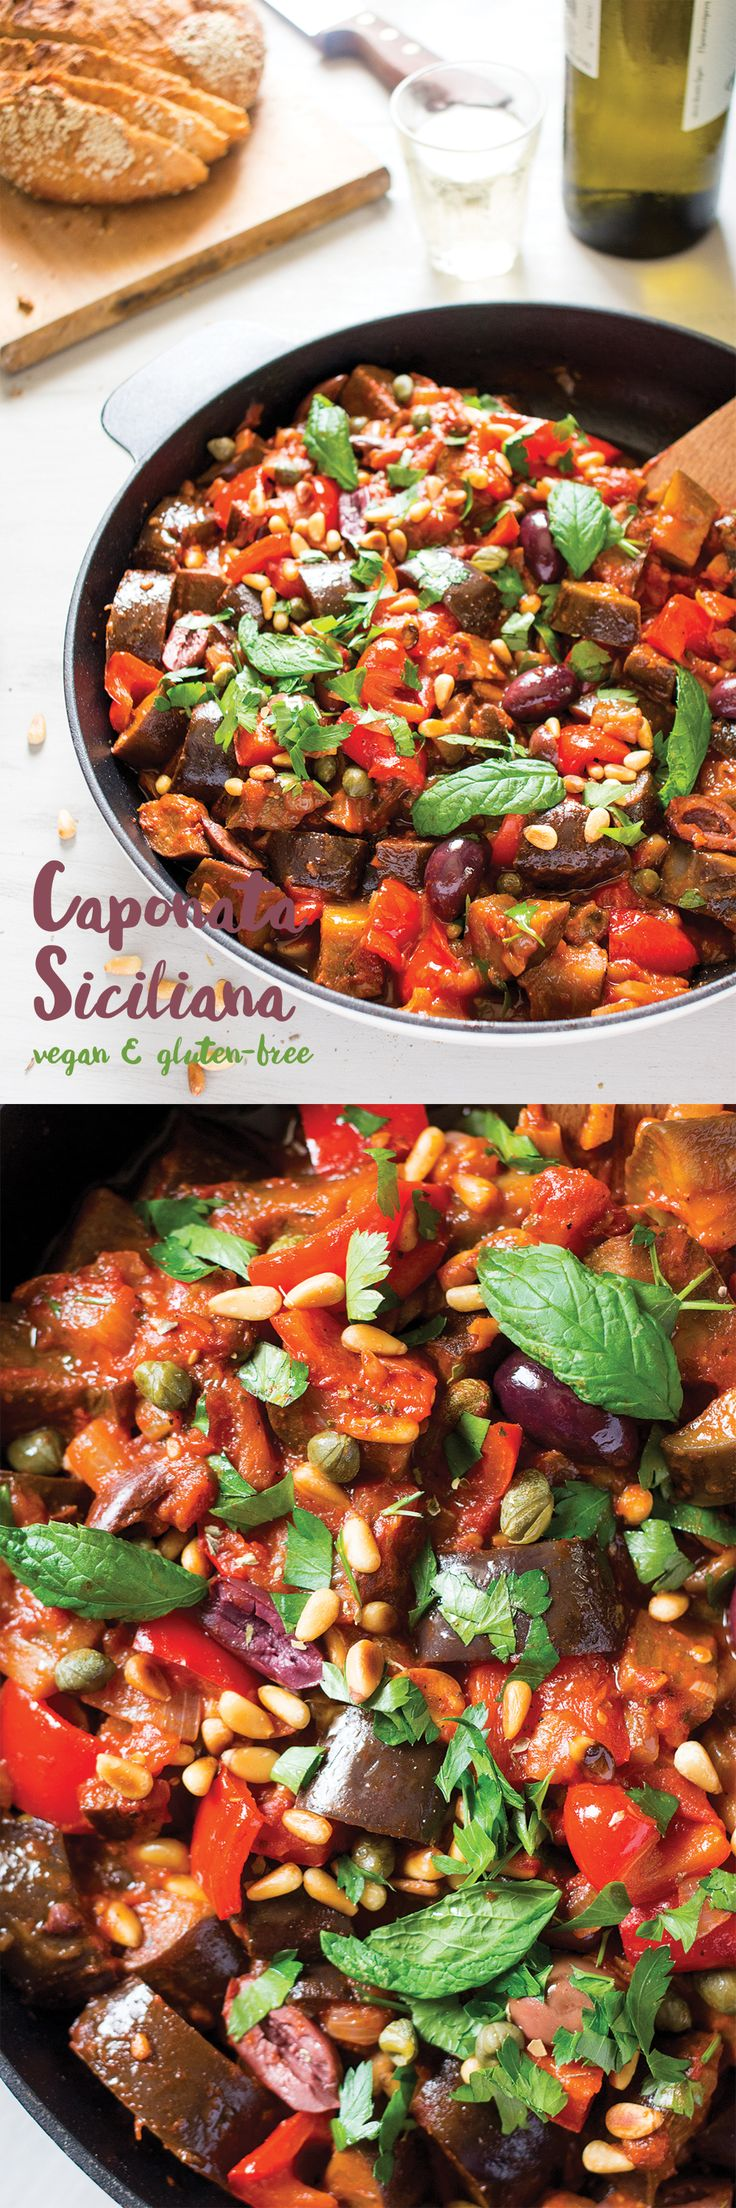 32486 best your favorite healthy recipes images on for Italian entree recipes